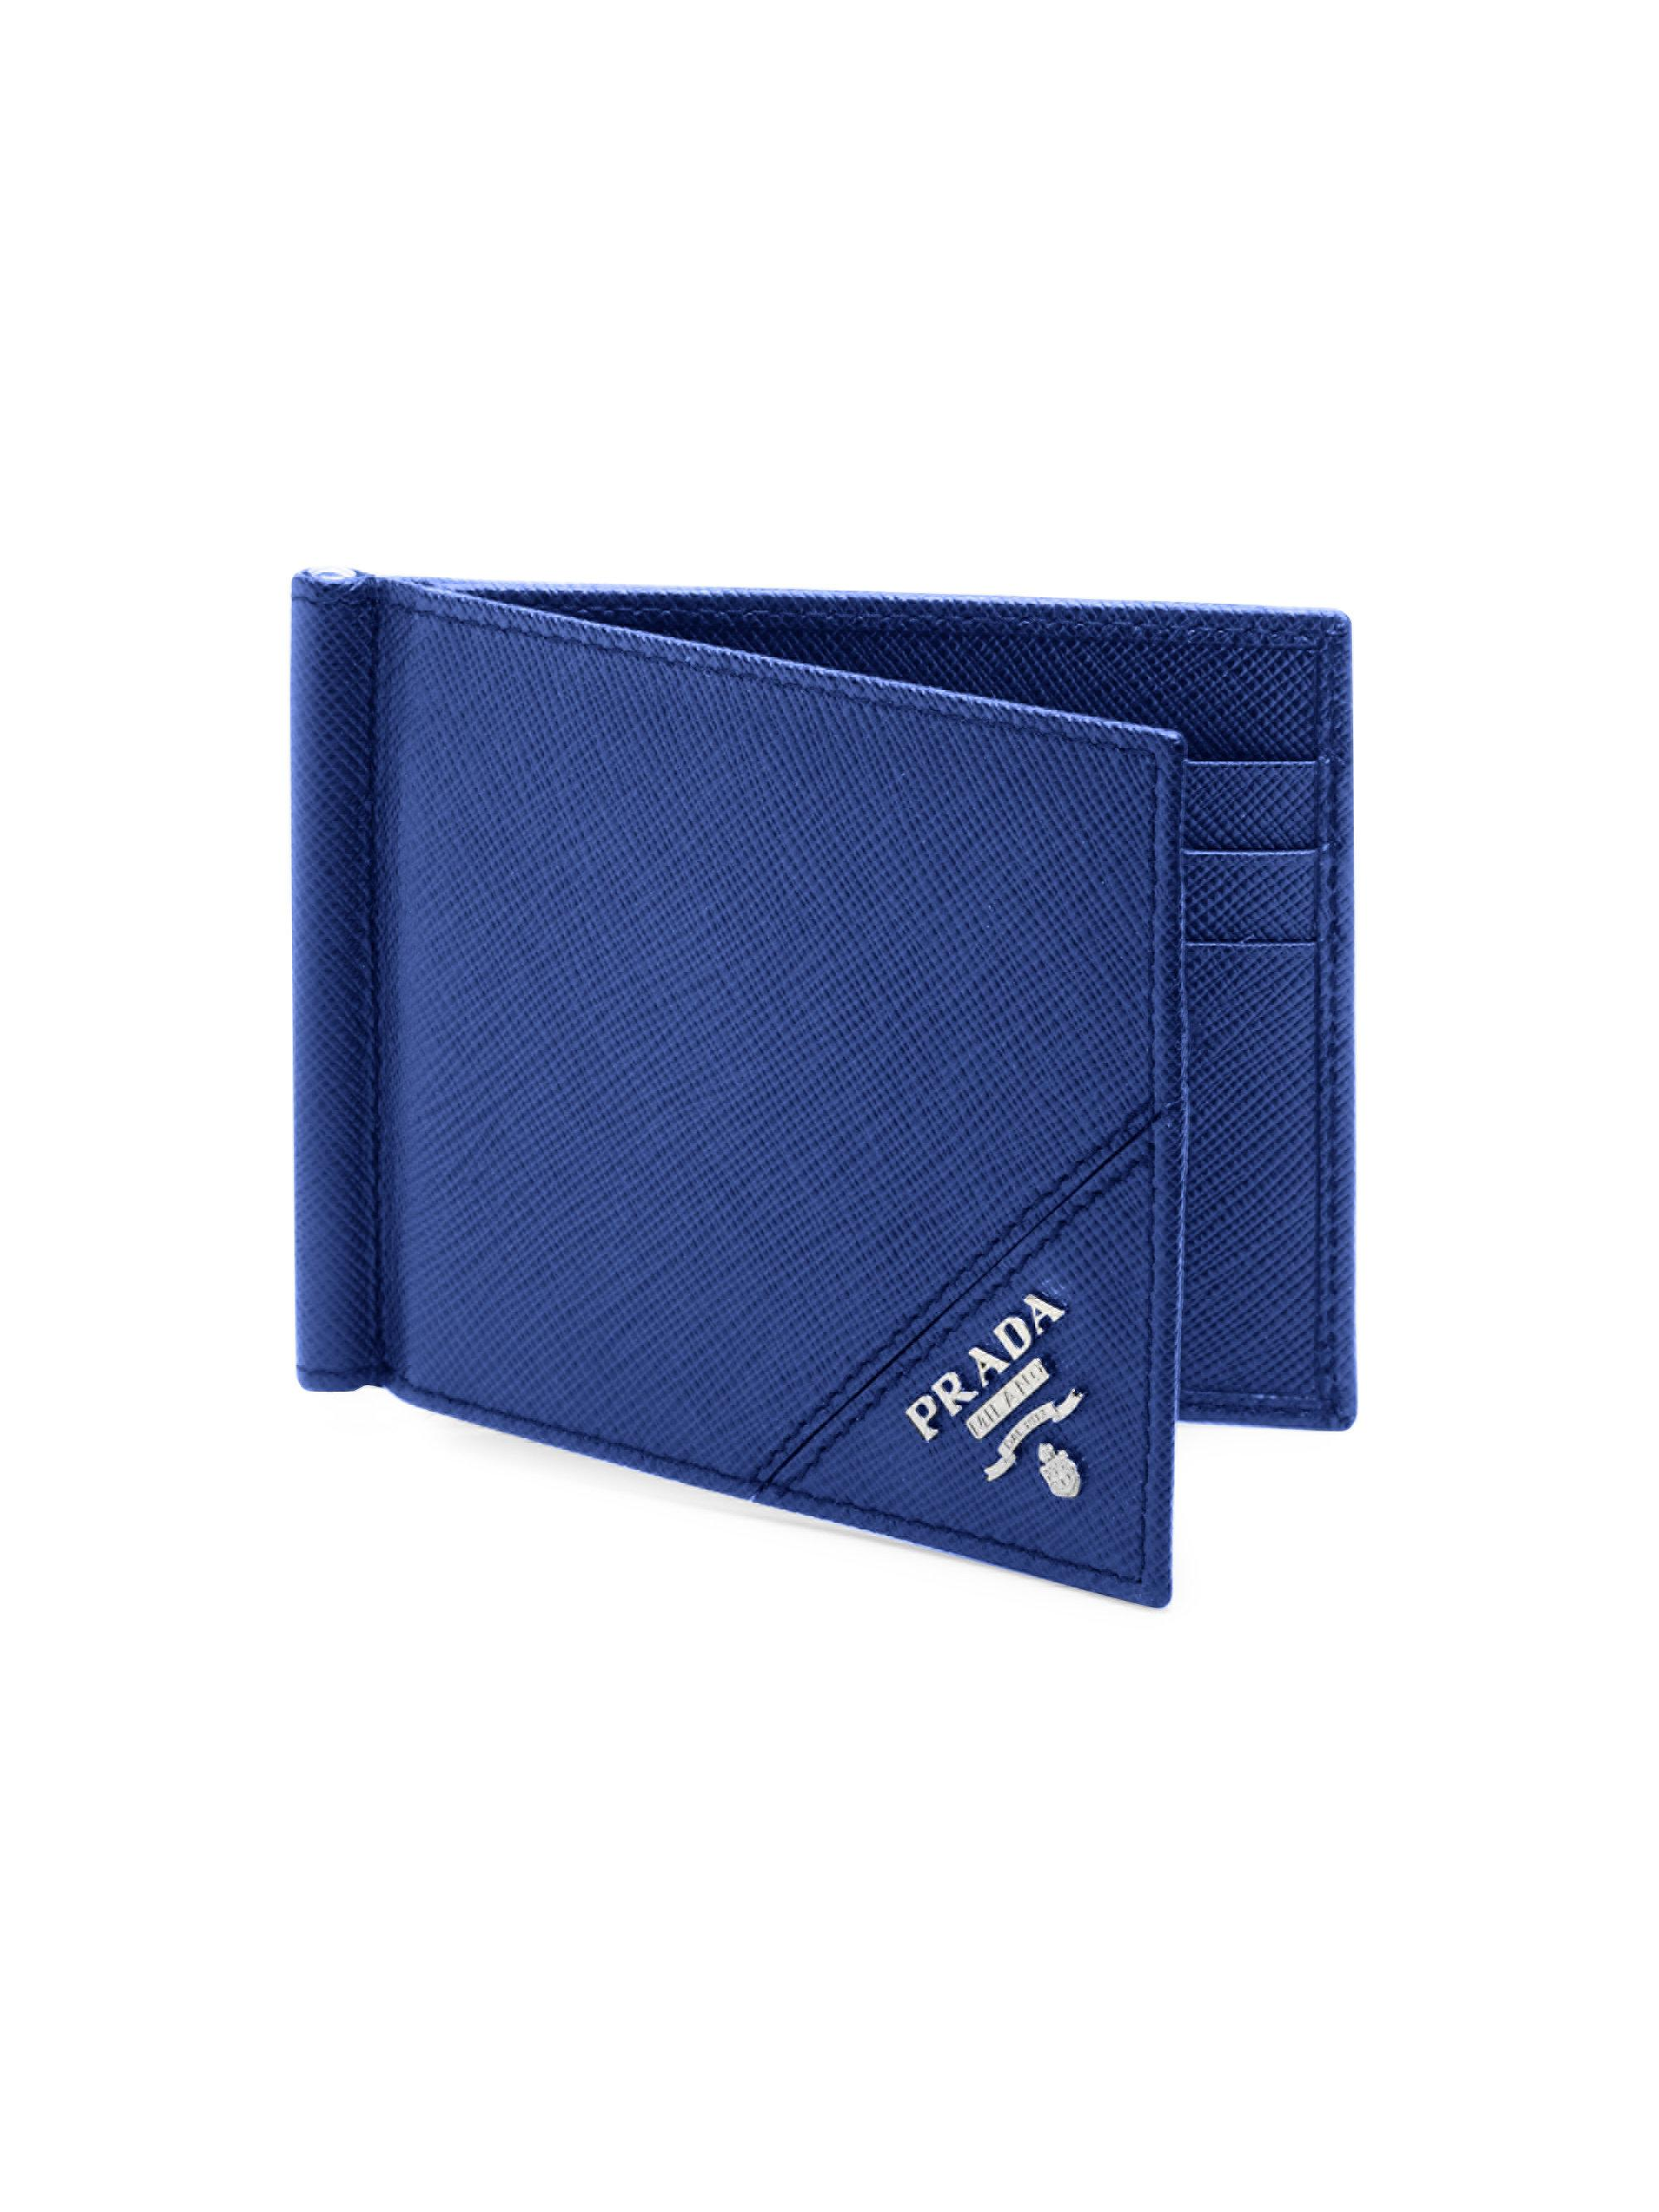 67d431b06ef0ab ... wholesale prada blue saffiano leather wallet for men lyst. view  fullscreen 090d3 cfec2